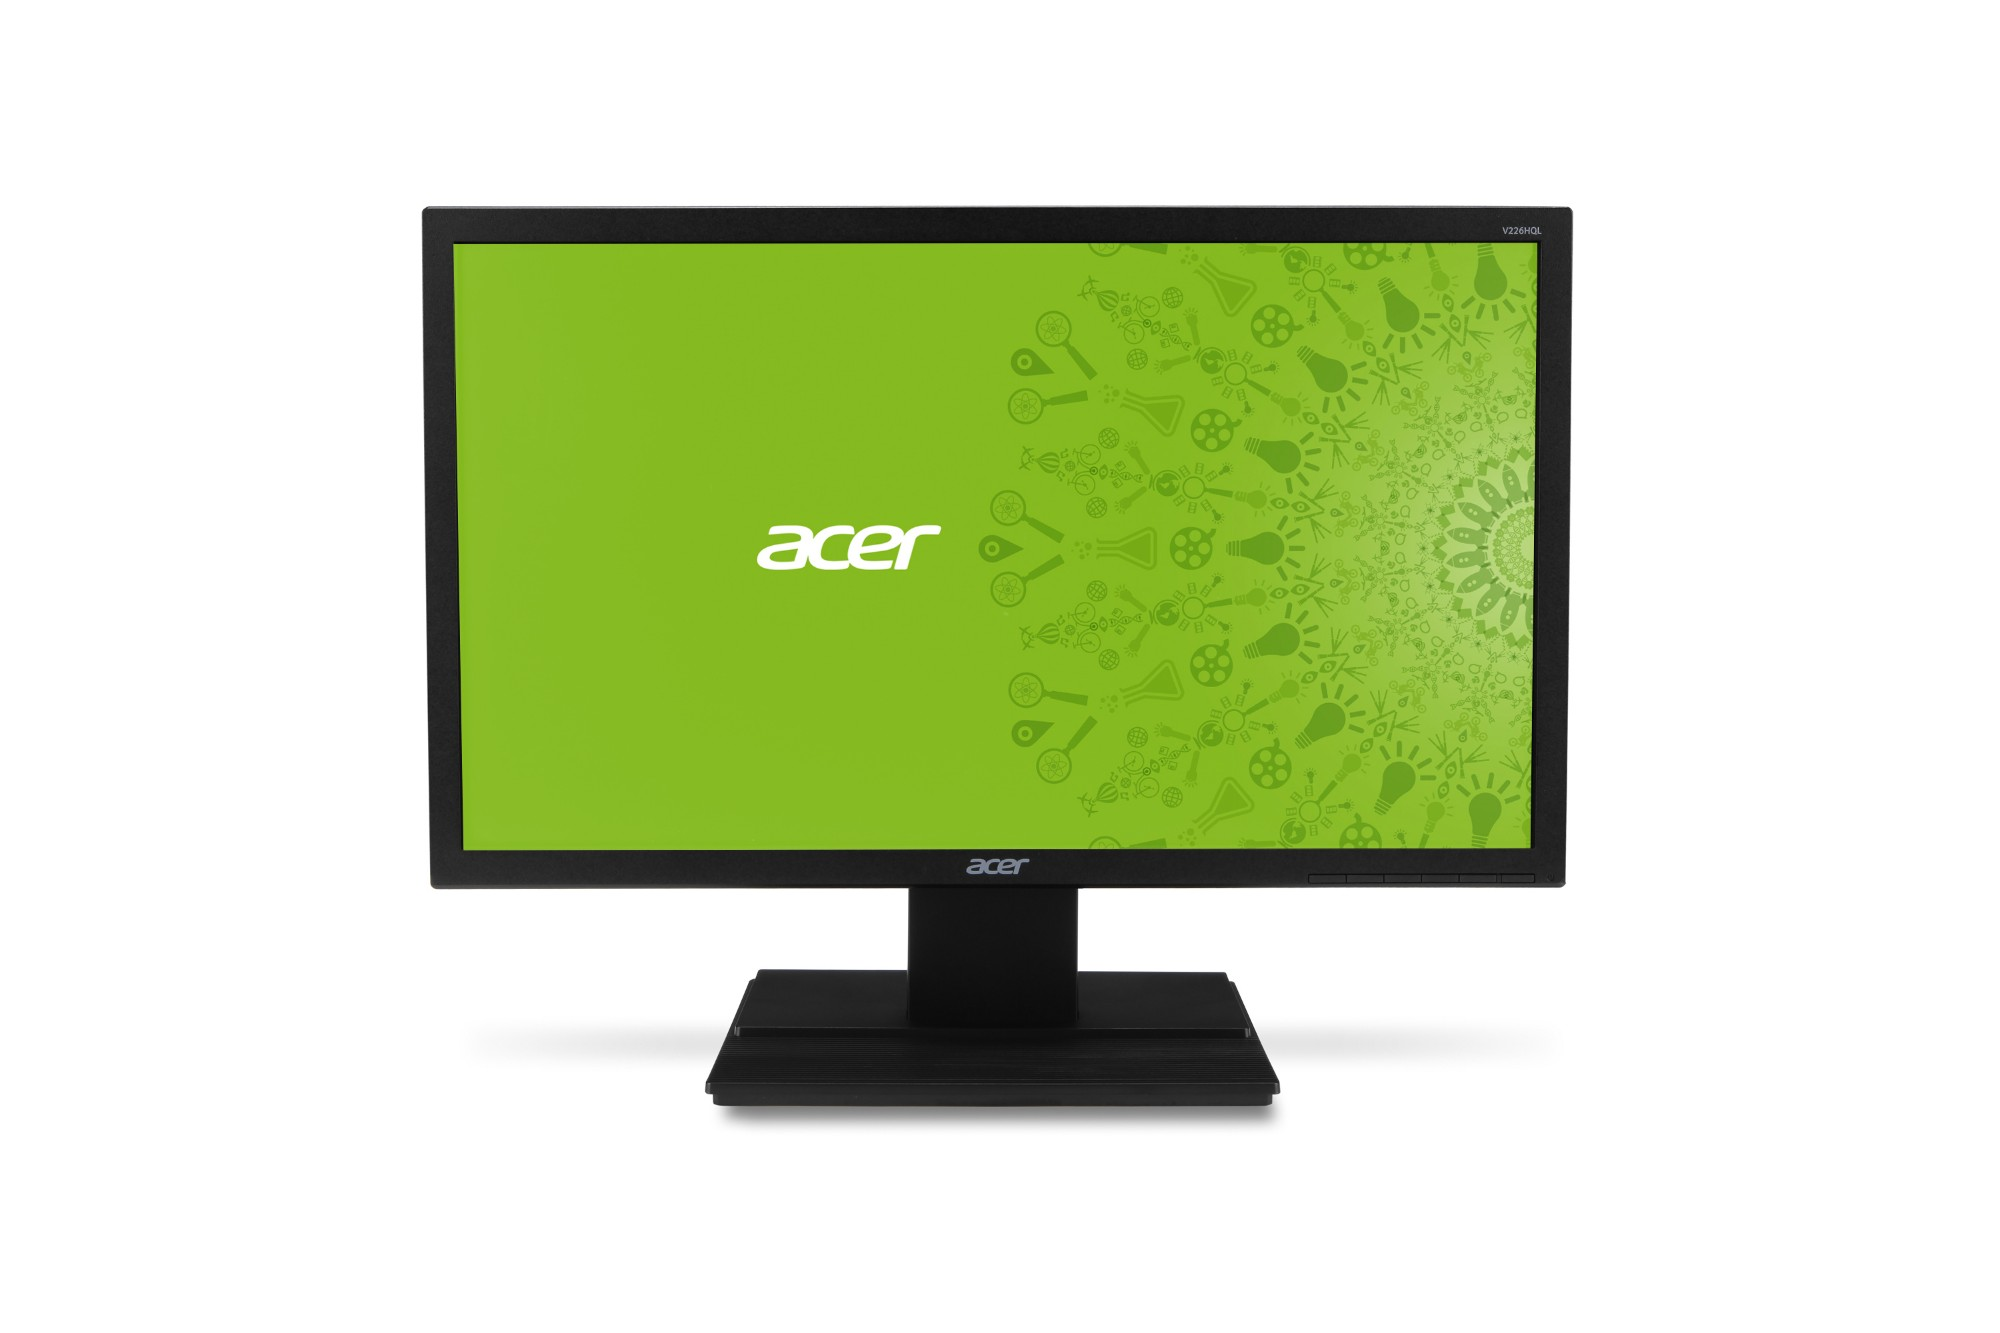 Acer V6 V226HQL LED display 54.6 cm (21.5